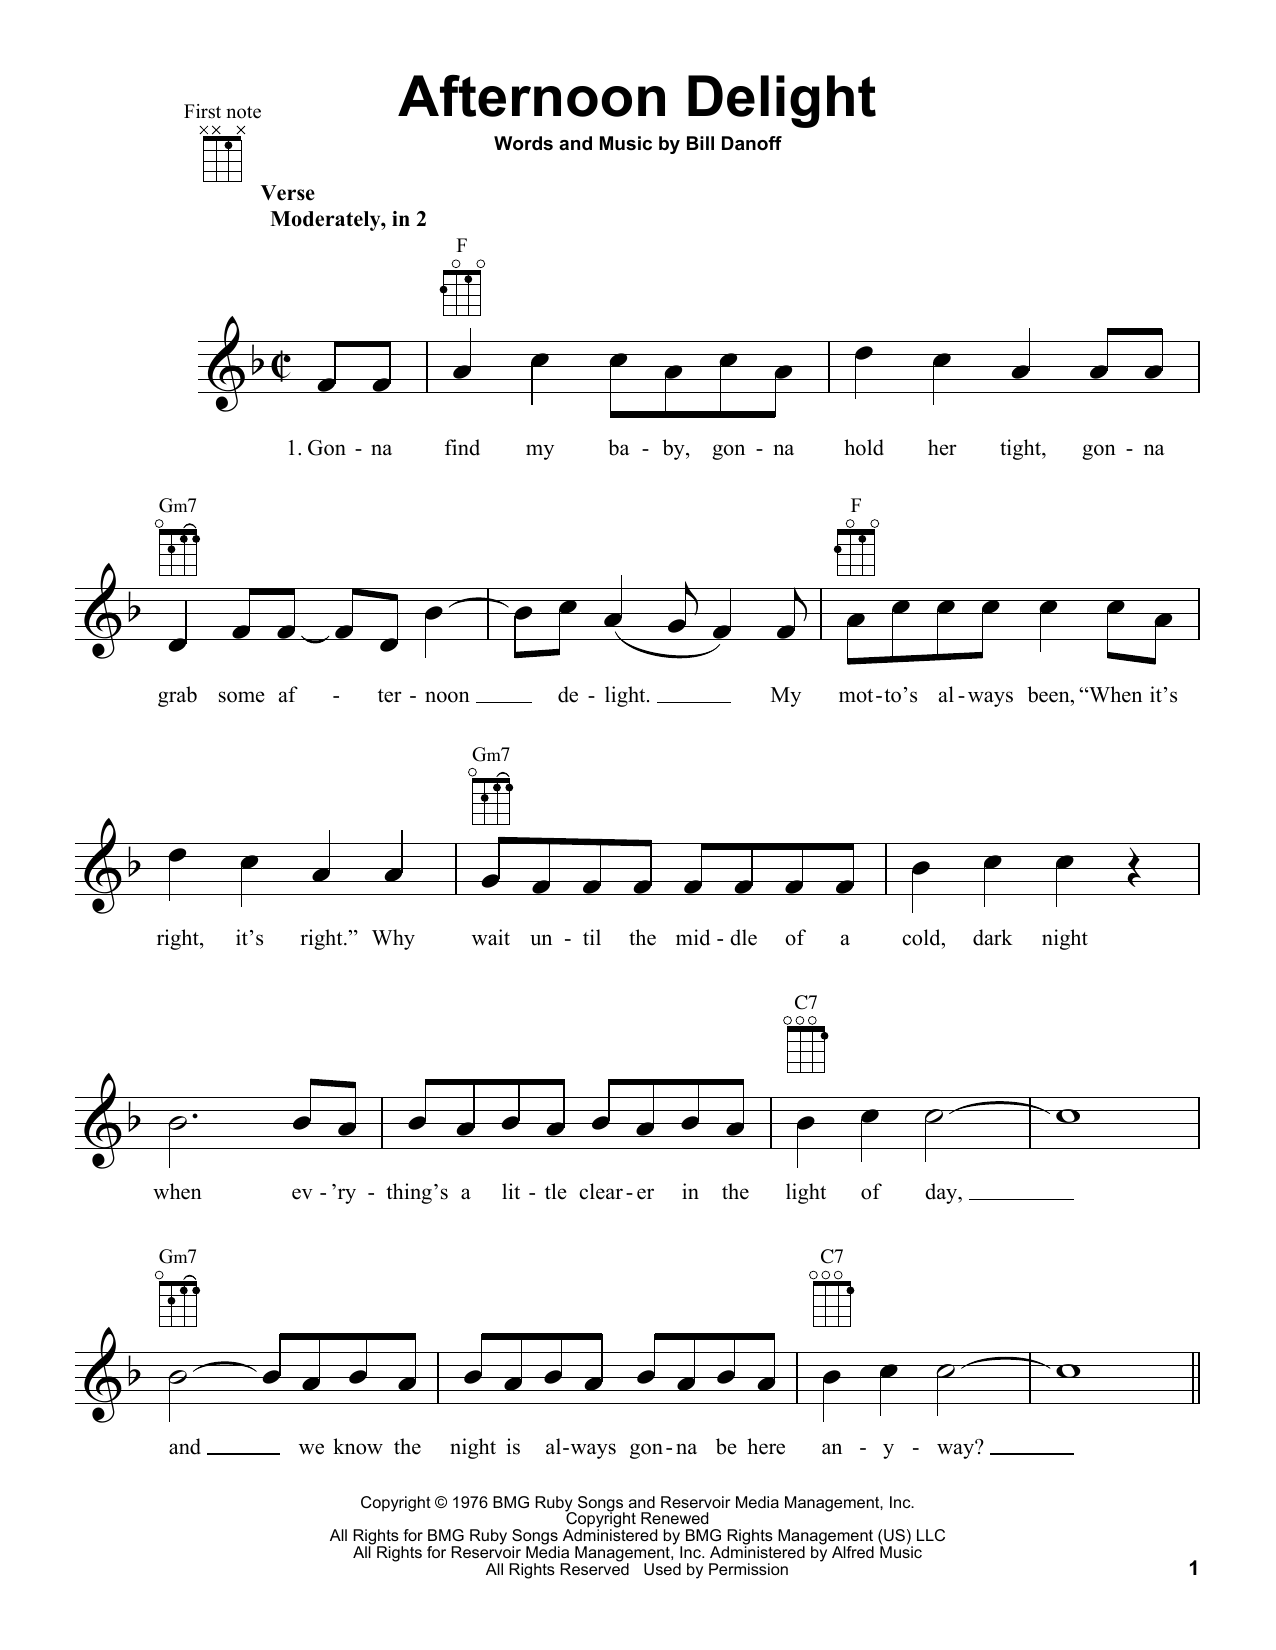 Starland Vocal Band - Afternoon Delight (Chords)